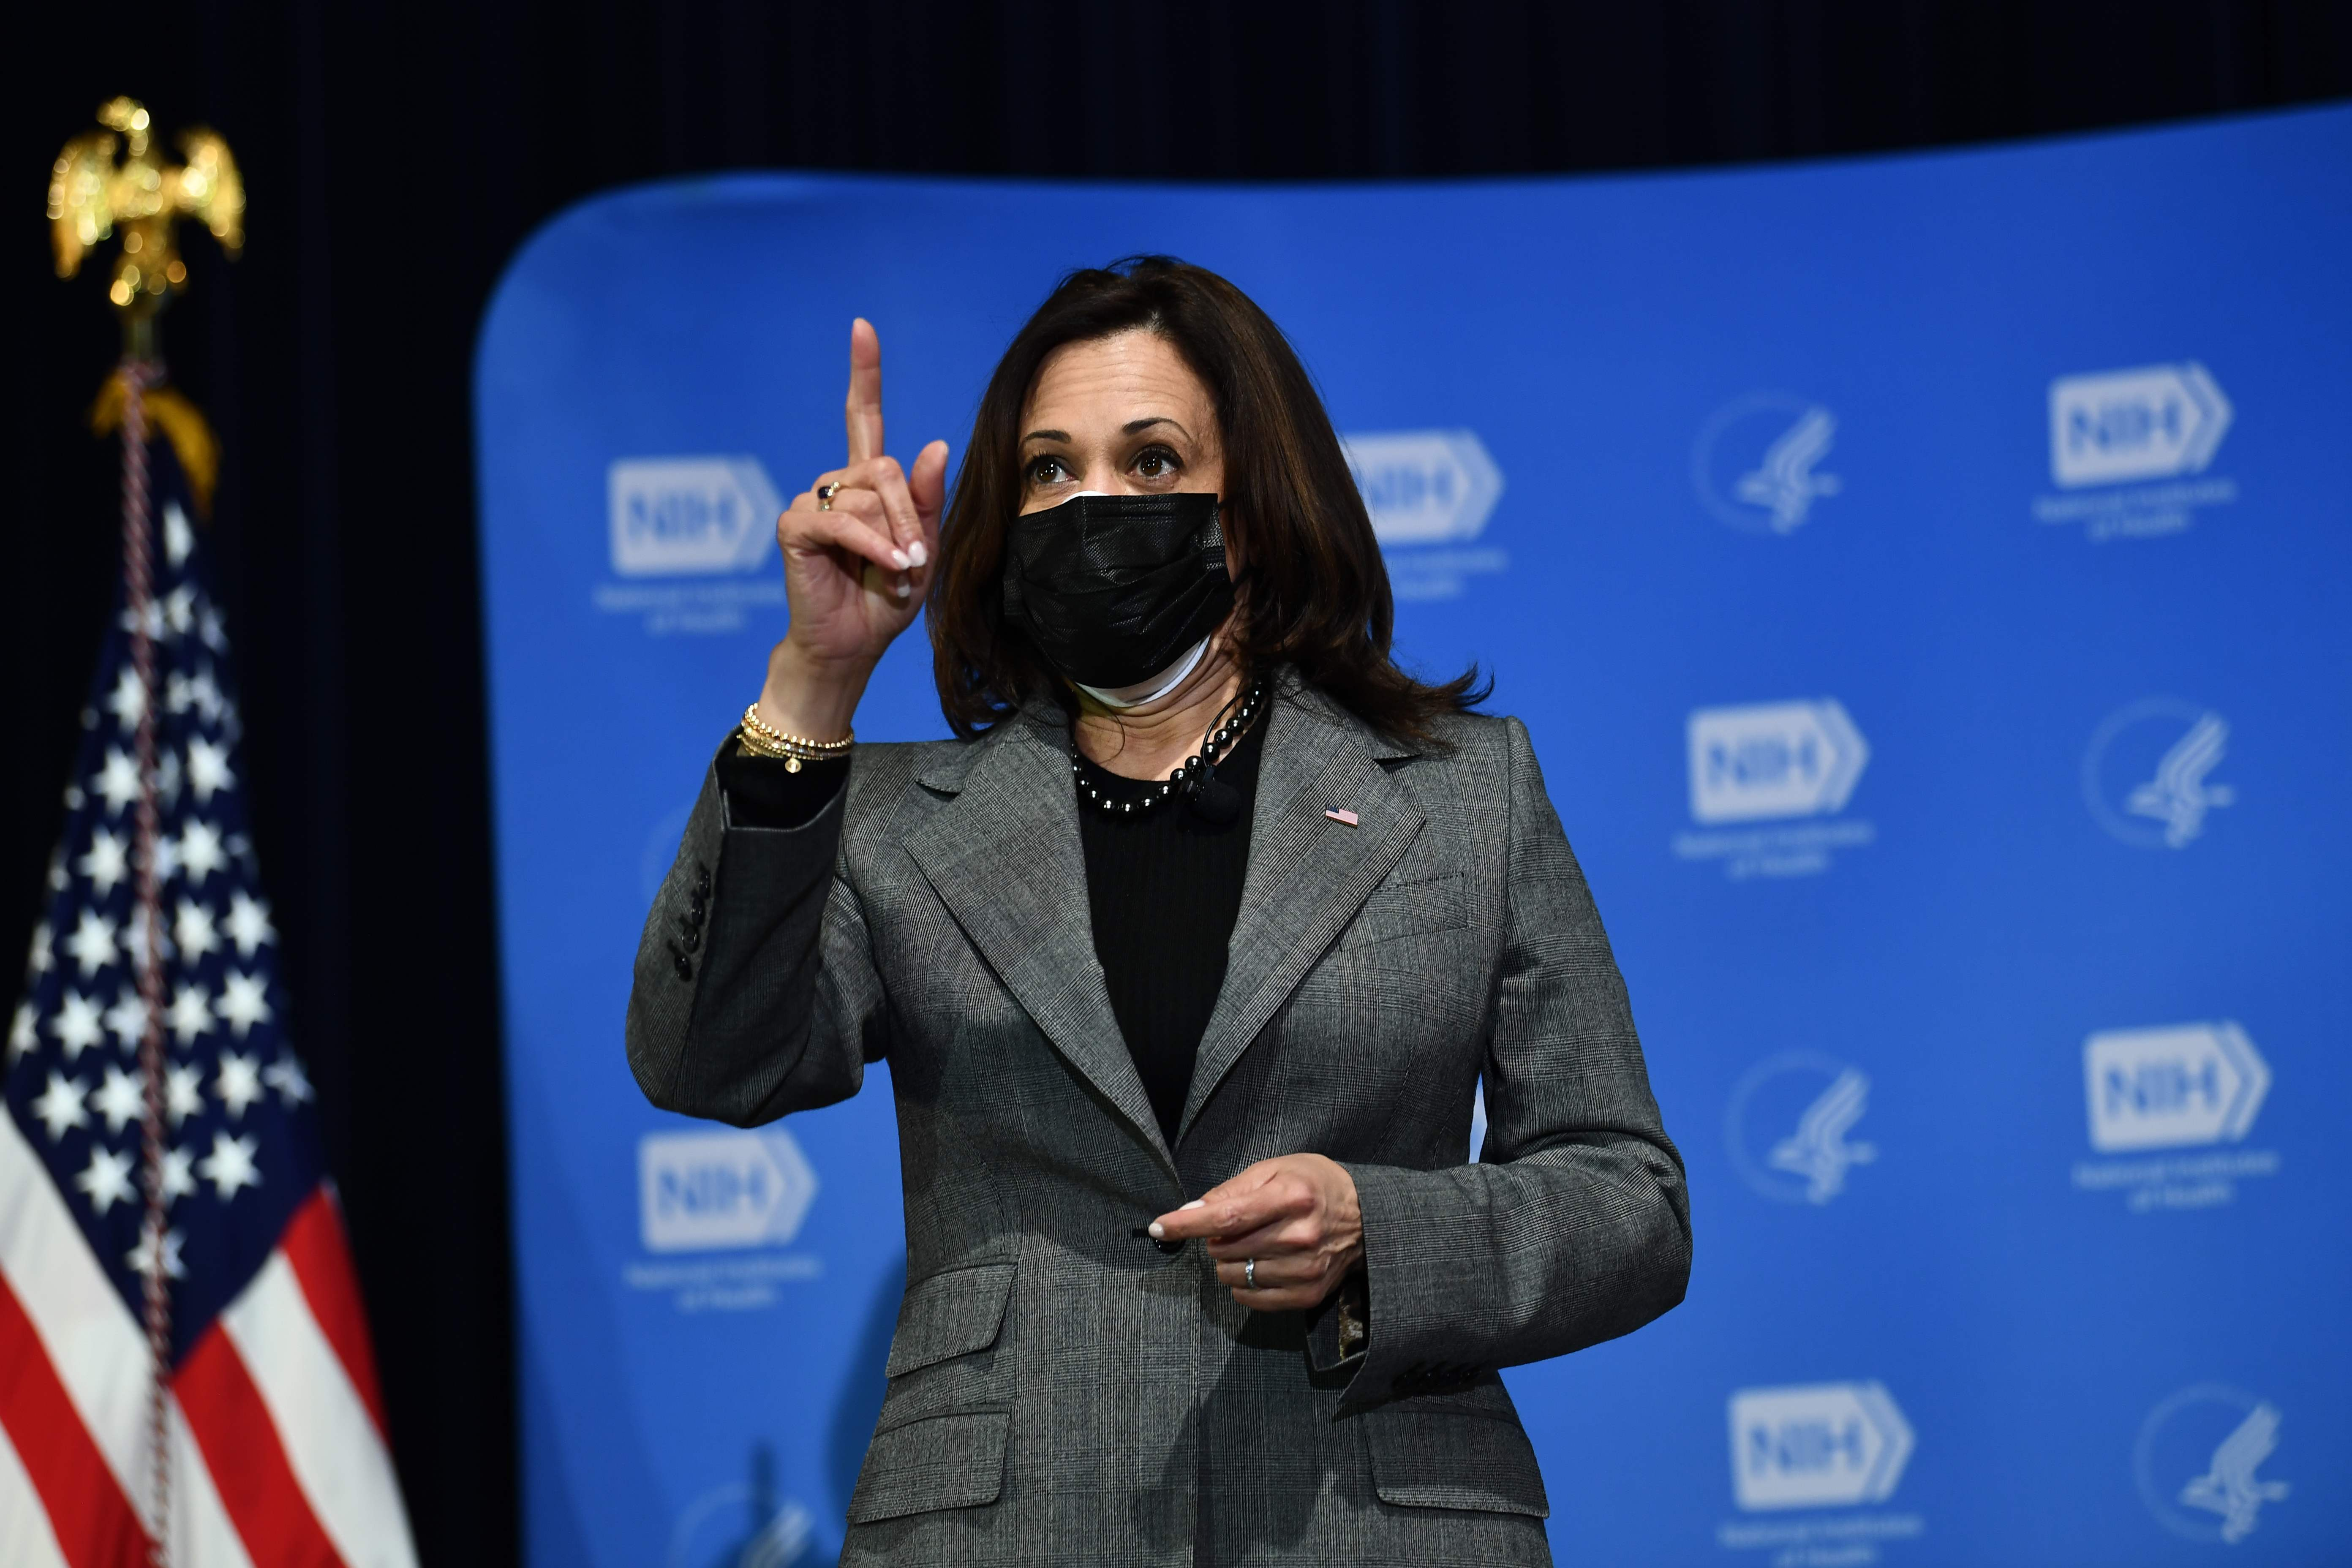 Kamala Harris says first job was cleaning mother's research lab equipment